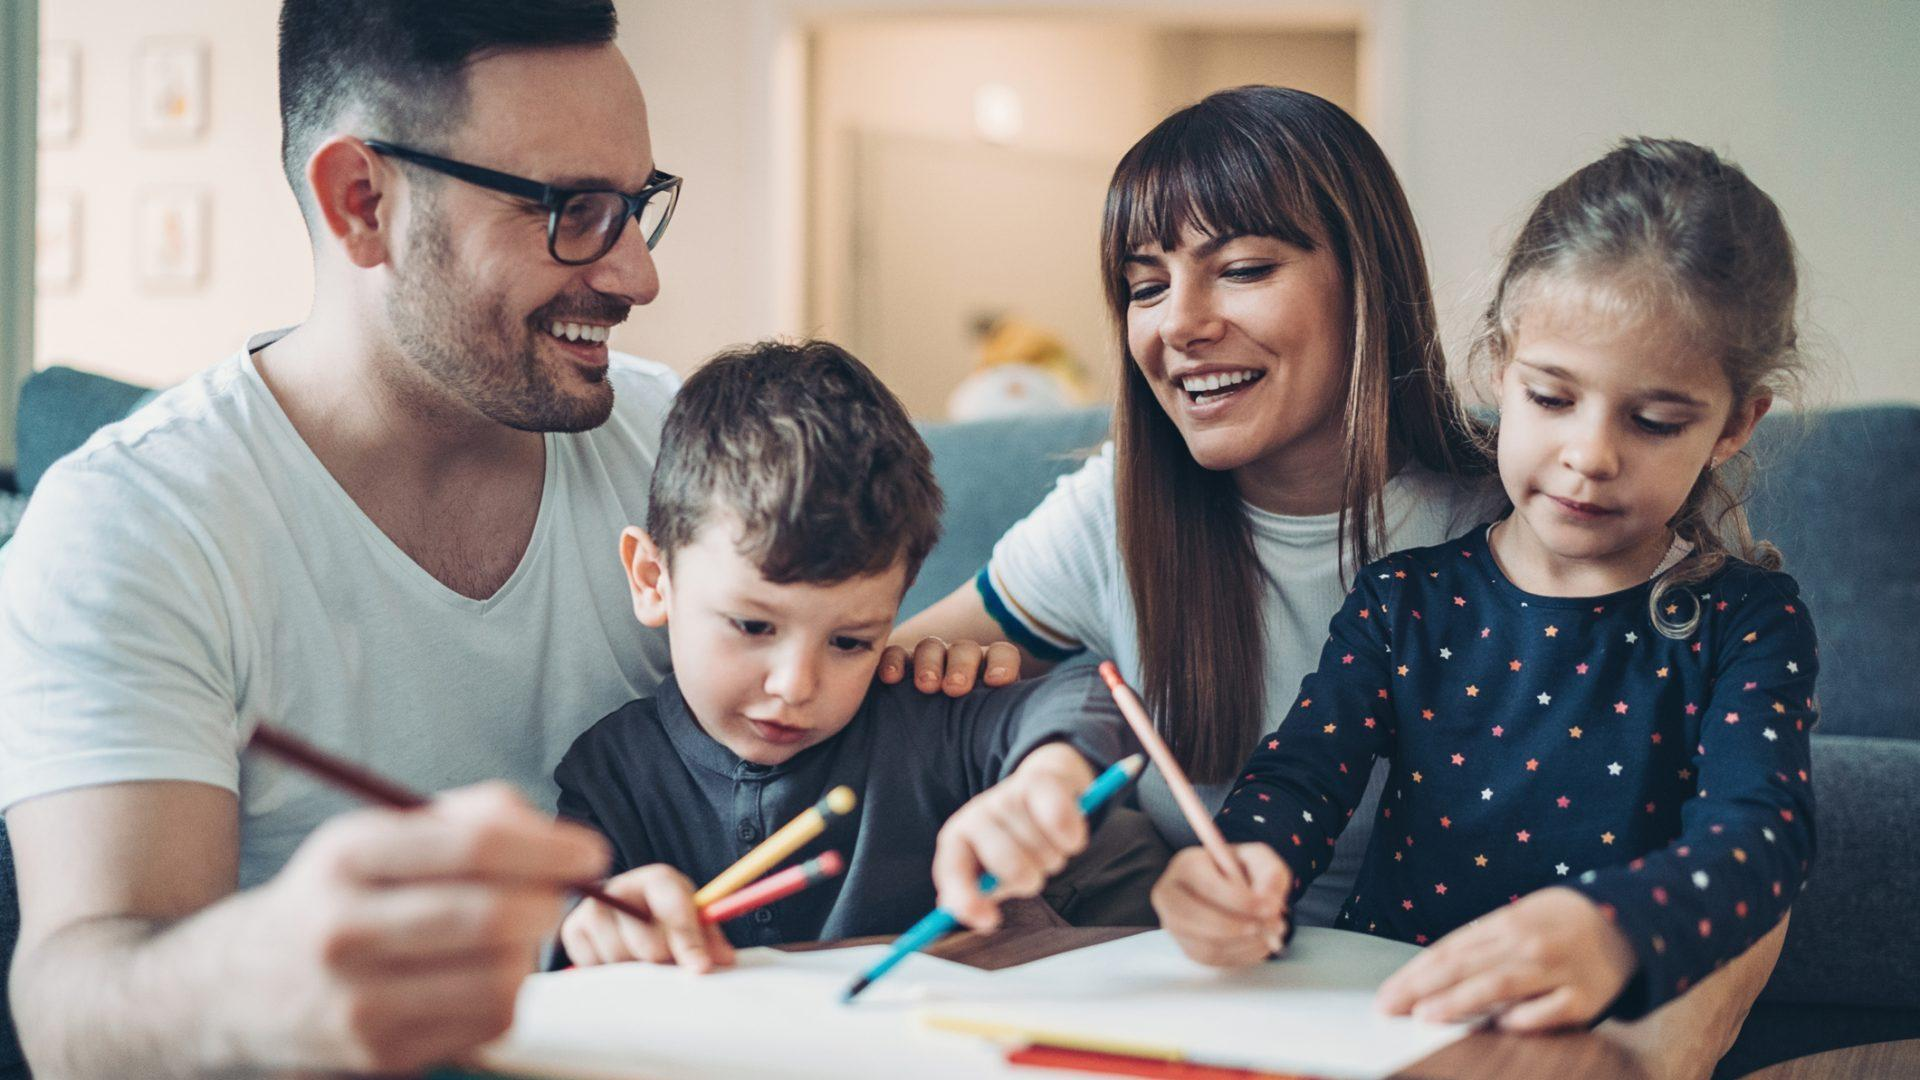 Two parents and a little boy drawing and writing together.